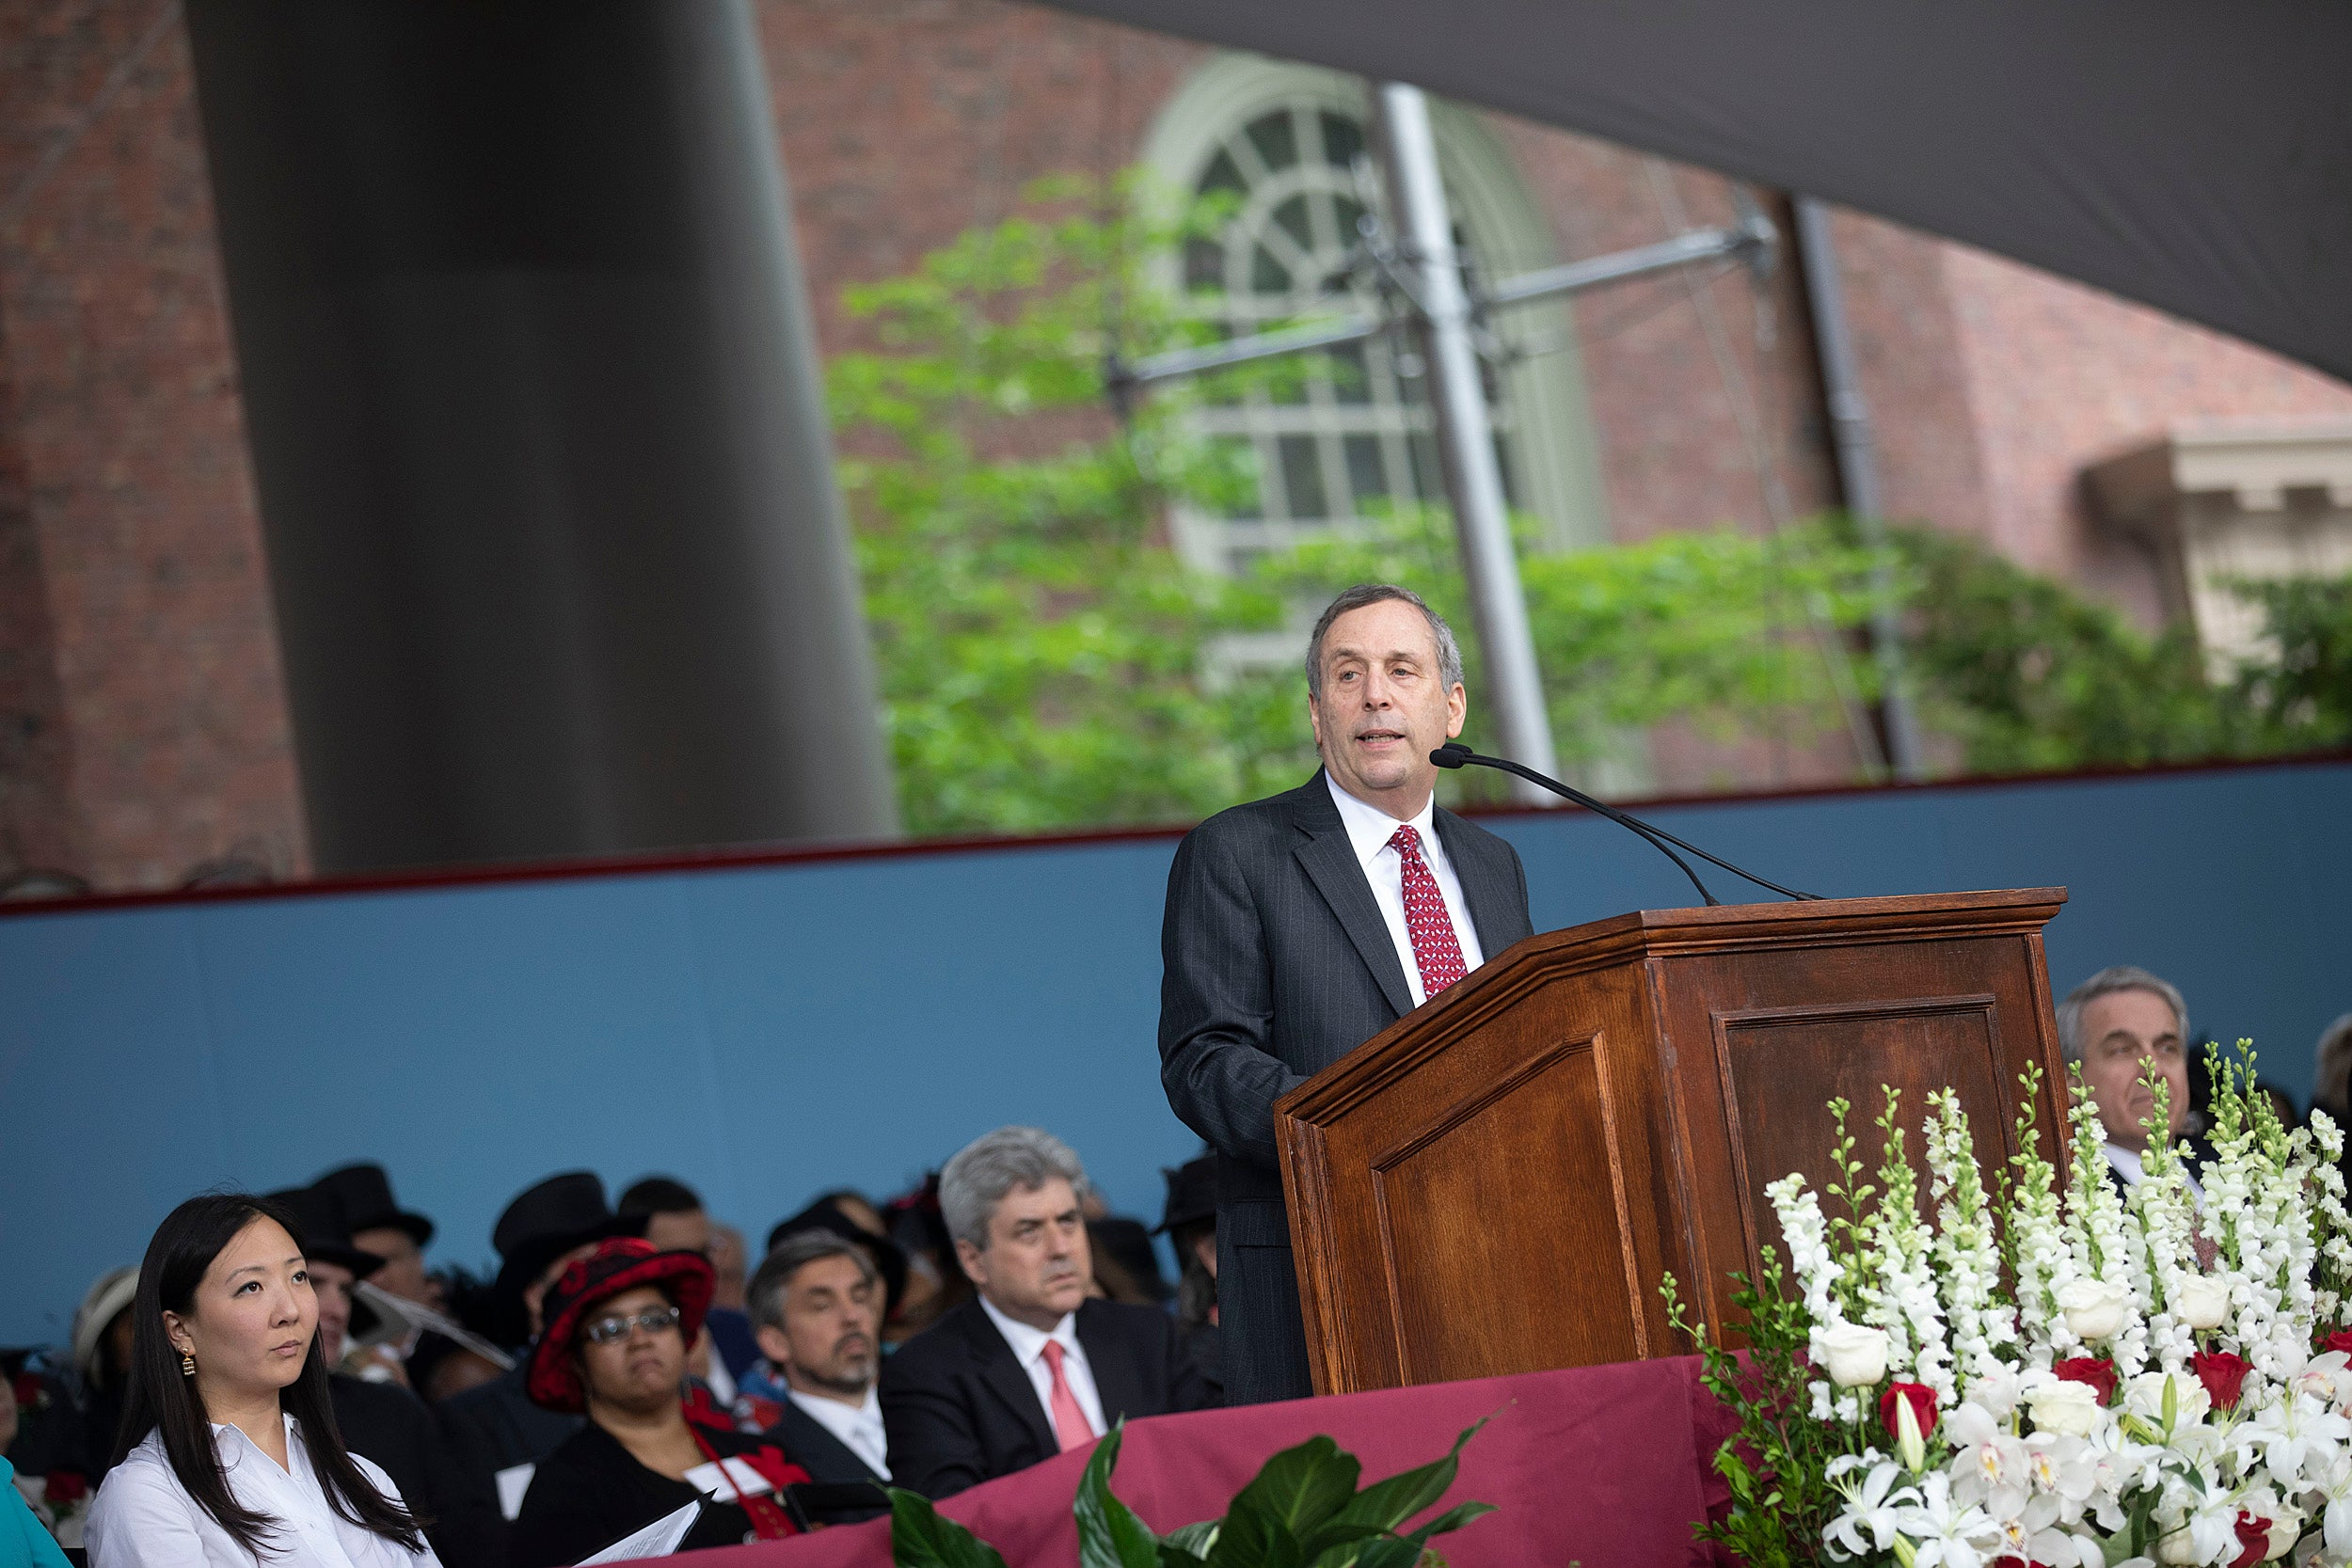 President Larry Bacow speaks at the Afternoon Program.